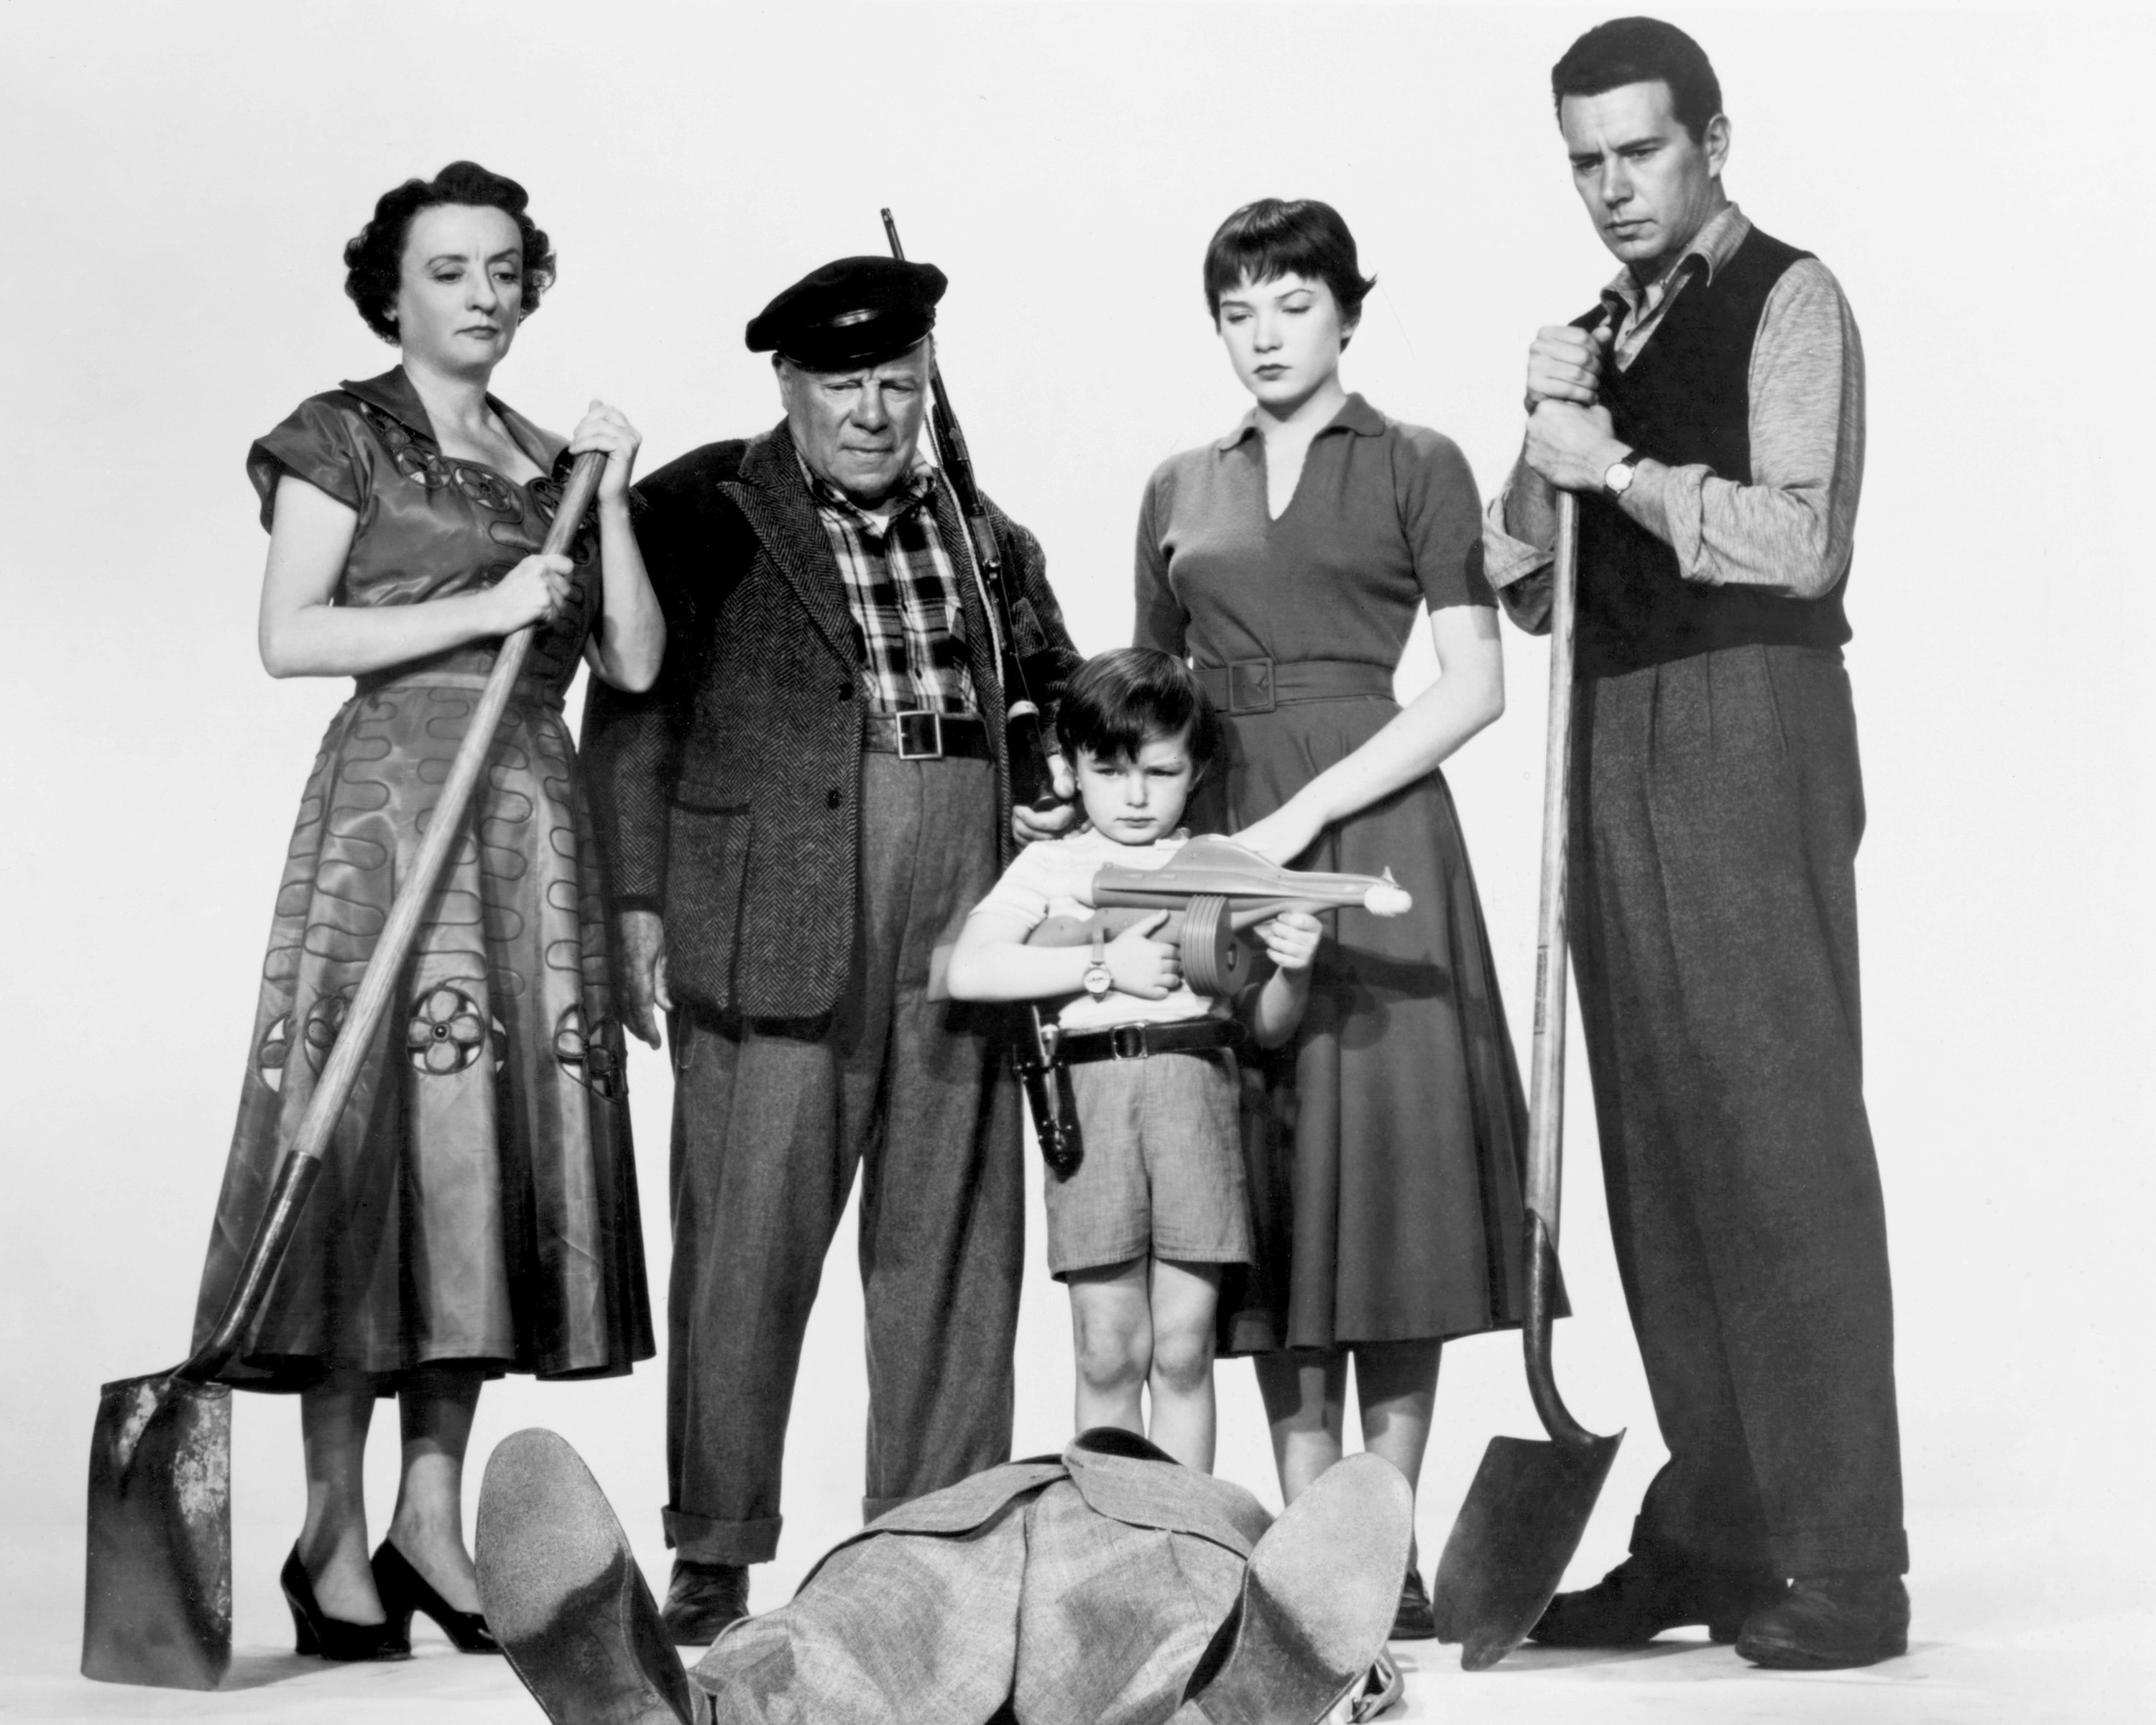 Shirley MacLaine, John Forsythe, Edmund Gwenn, Jerry Mathers, and Mildred Natwick in The Trouble with Harry (1955)